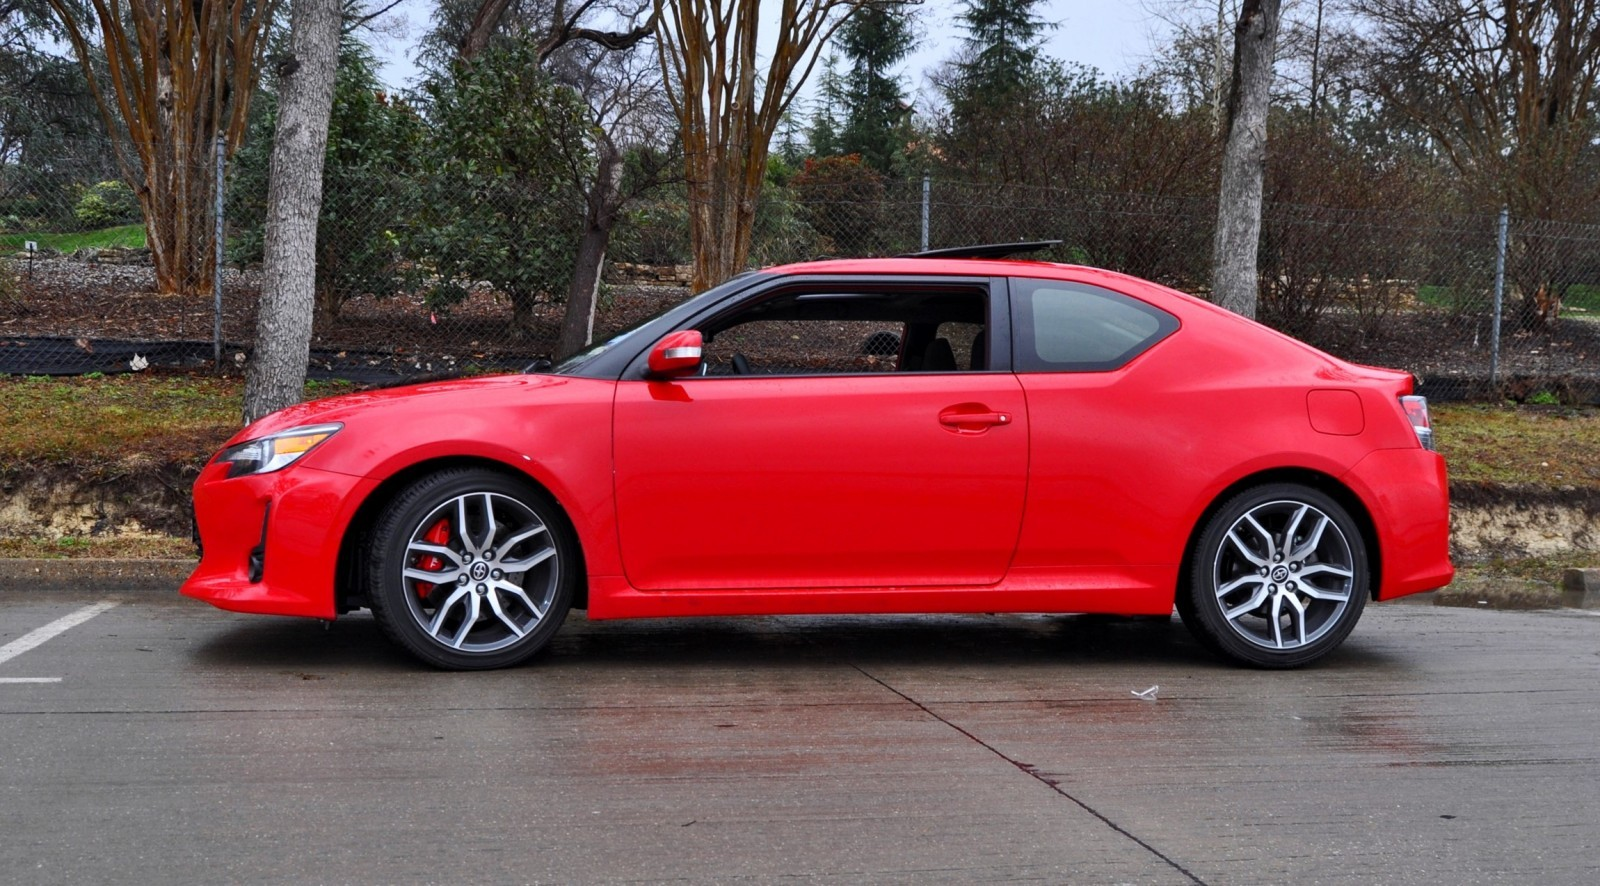 Road Test Review - 2015 Scion tC 6-Speed With TRD Performance Parts 18